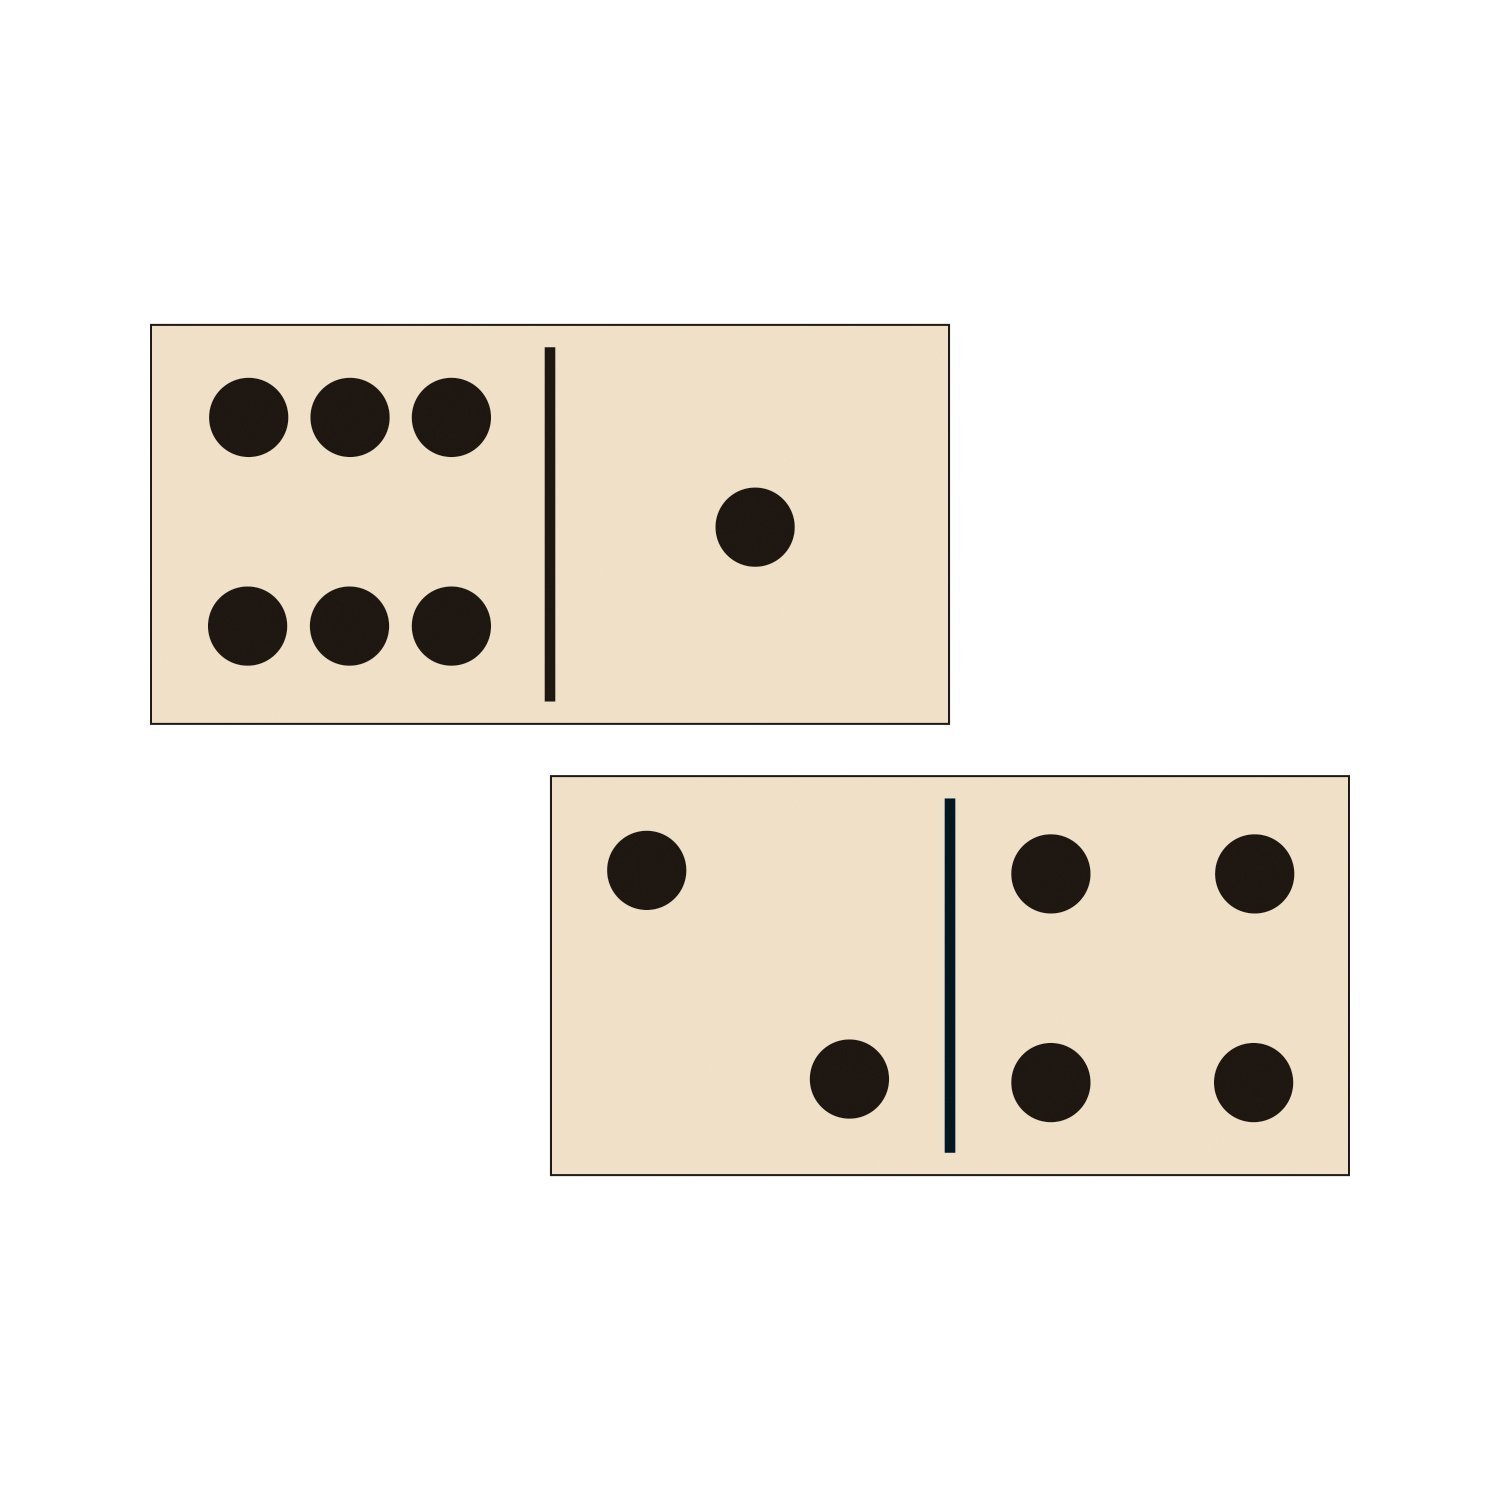 Galison: Wooden Dominoes - The Patterns Of Frank Lloyd Wright image